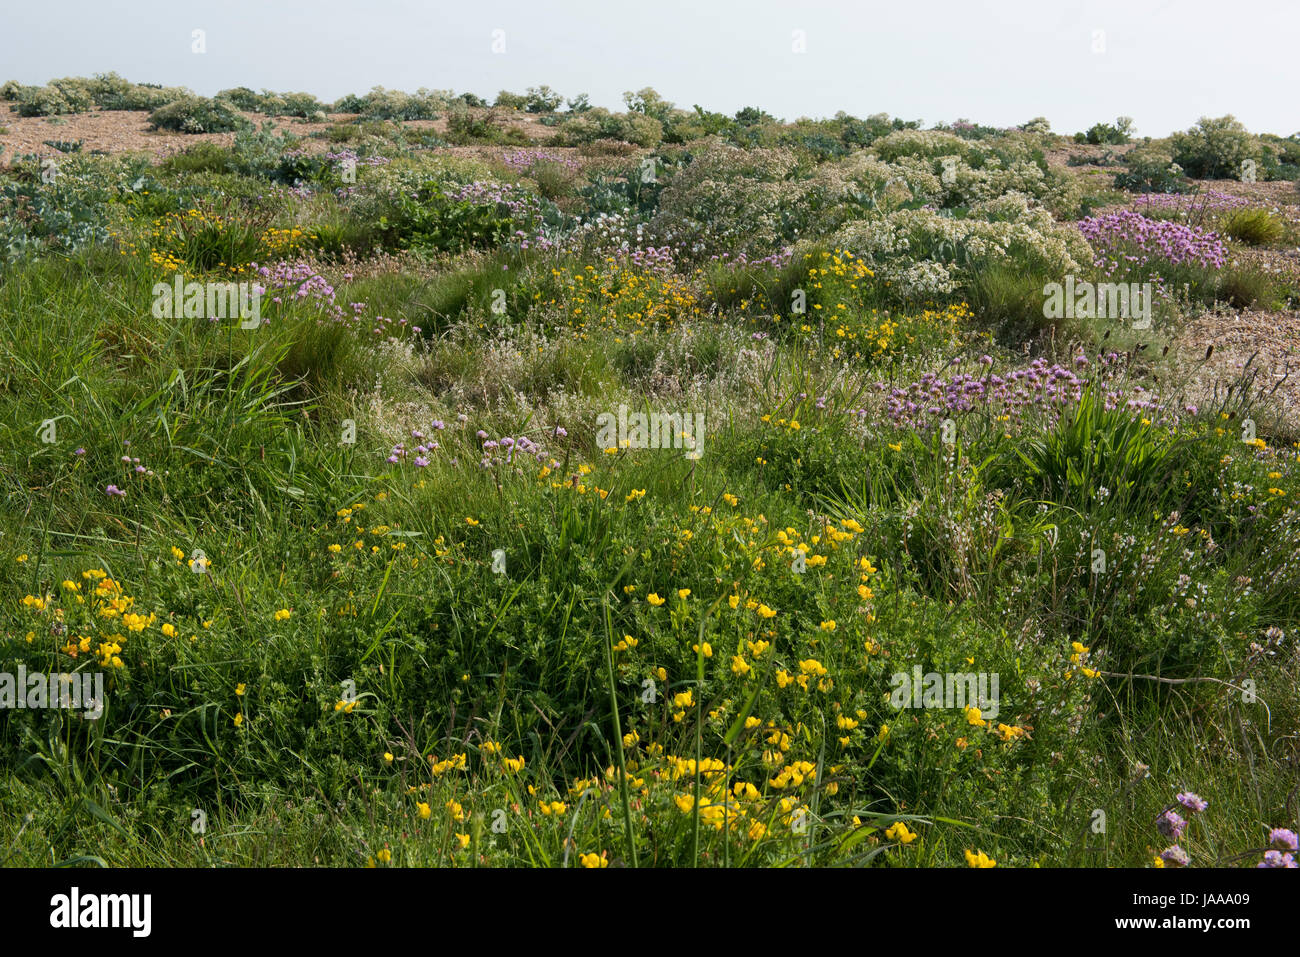 Diverse, flowering plants on the land side of Chesil Beach including, sea thrift, kale and bird's-foot trefoil - Stock Image